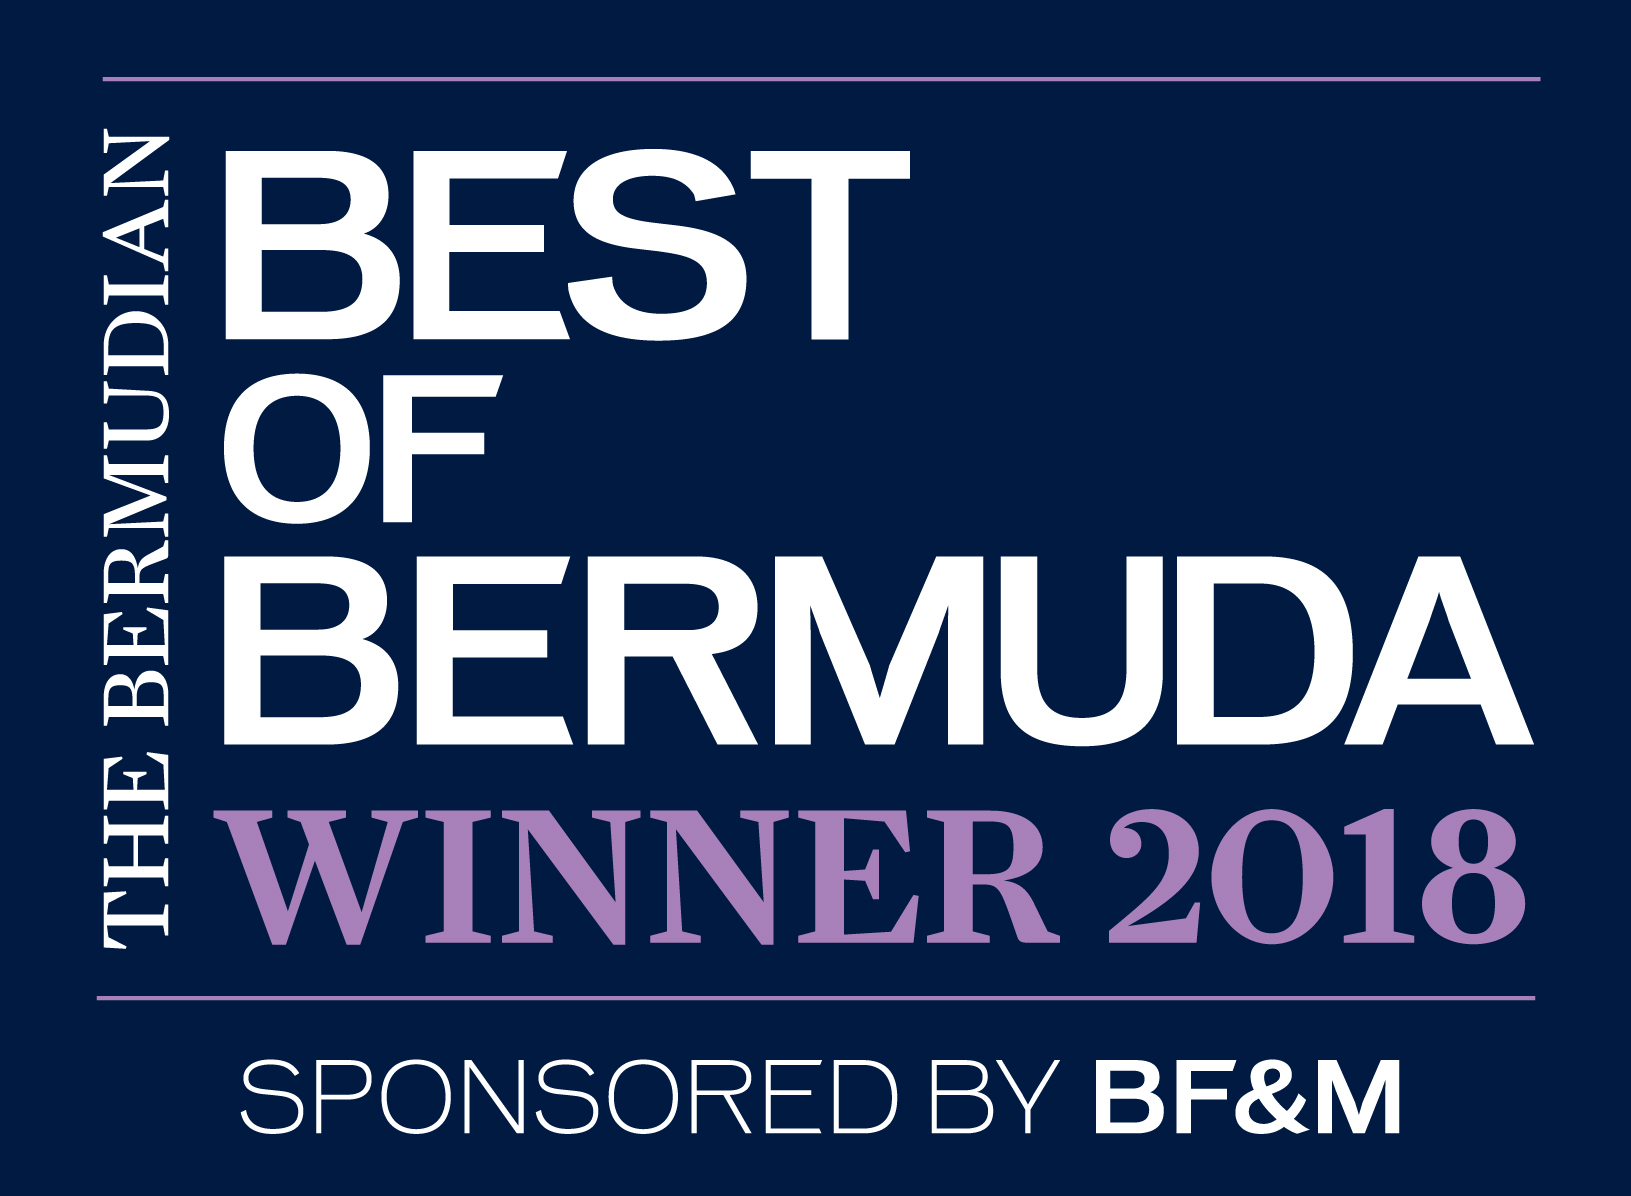 Best of Bermuda's best Charity/Community Service